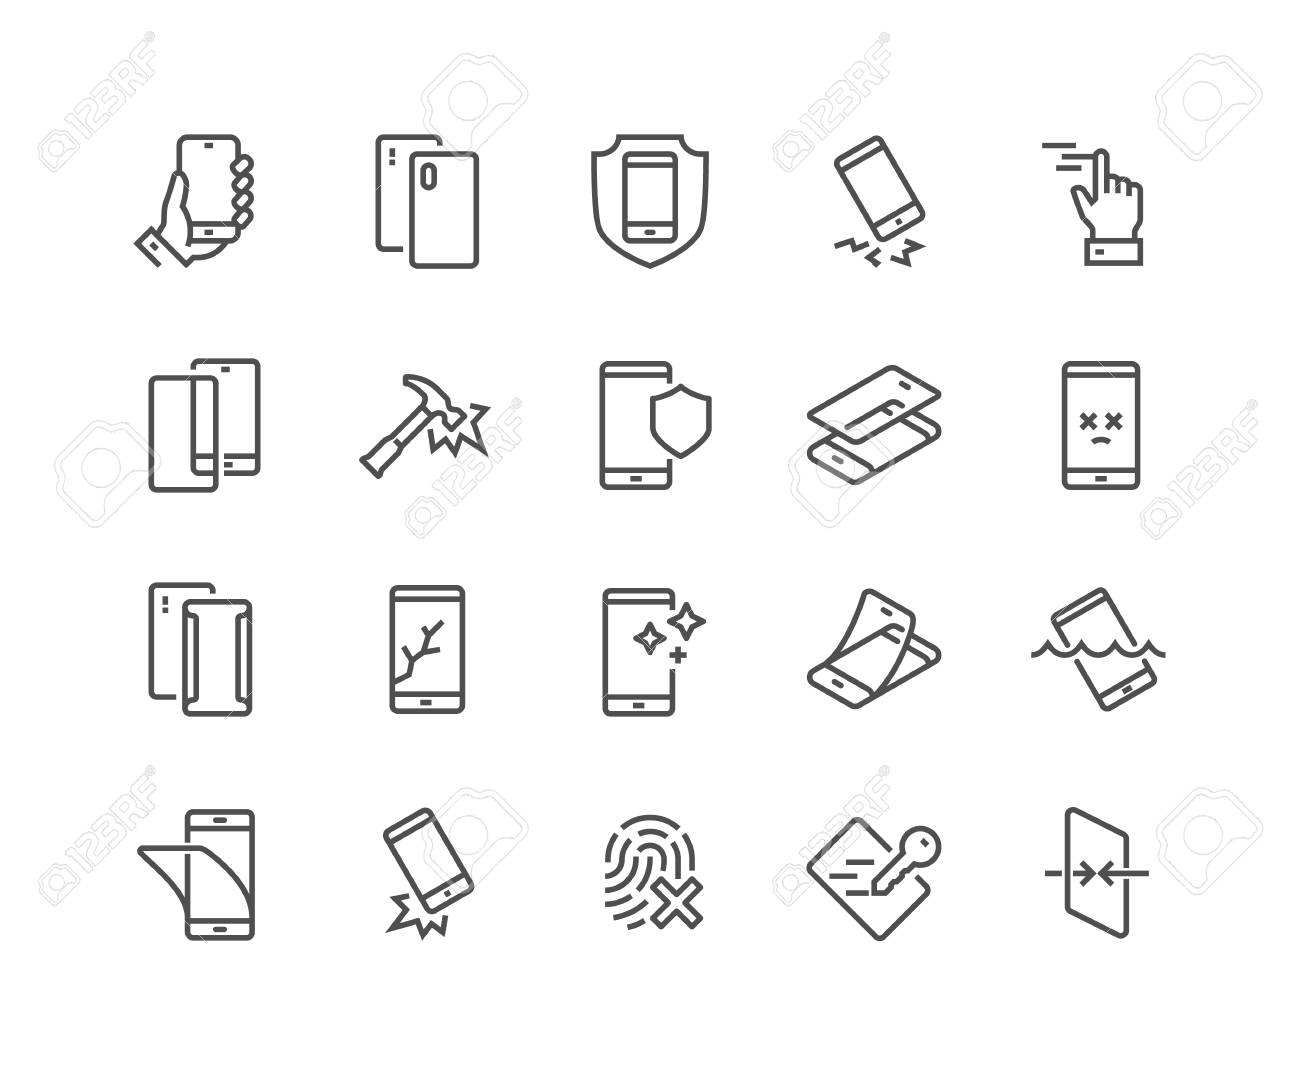 Simple Set of Smartphone Protection Related Vector Line Icons. Contains such Icons as Screen Protector, Delicate Touch, Tempered Glass and more. Editable Stroke. 48x48 Pixel Perfect. - 126090372